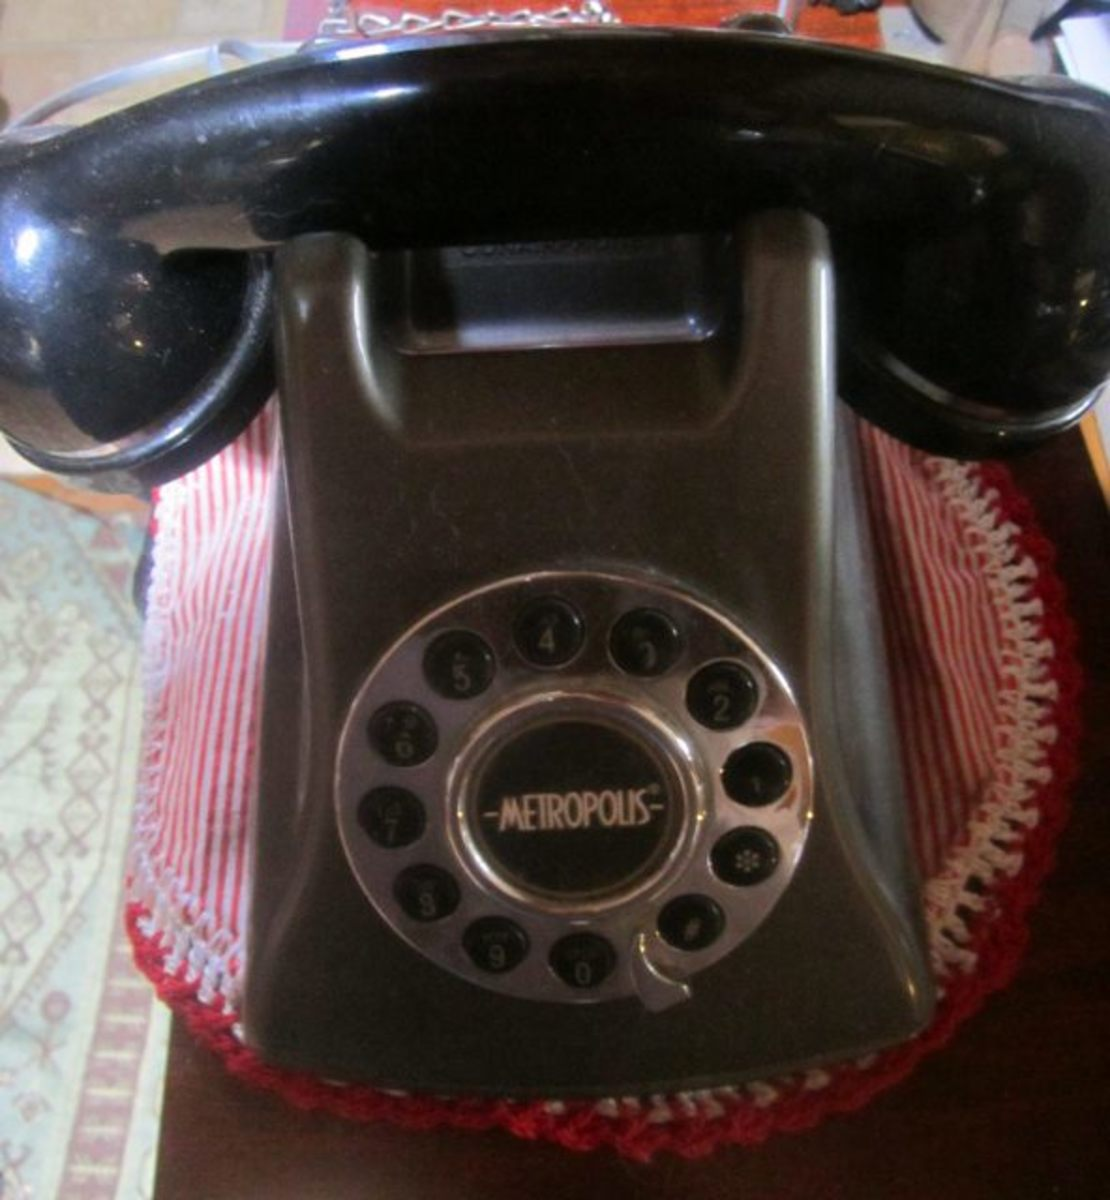 Someone getting rid of their landline was my lucky day in getting this cool phone for $1.00. I love the old-fashioned sounding ring!